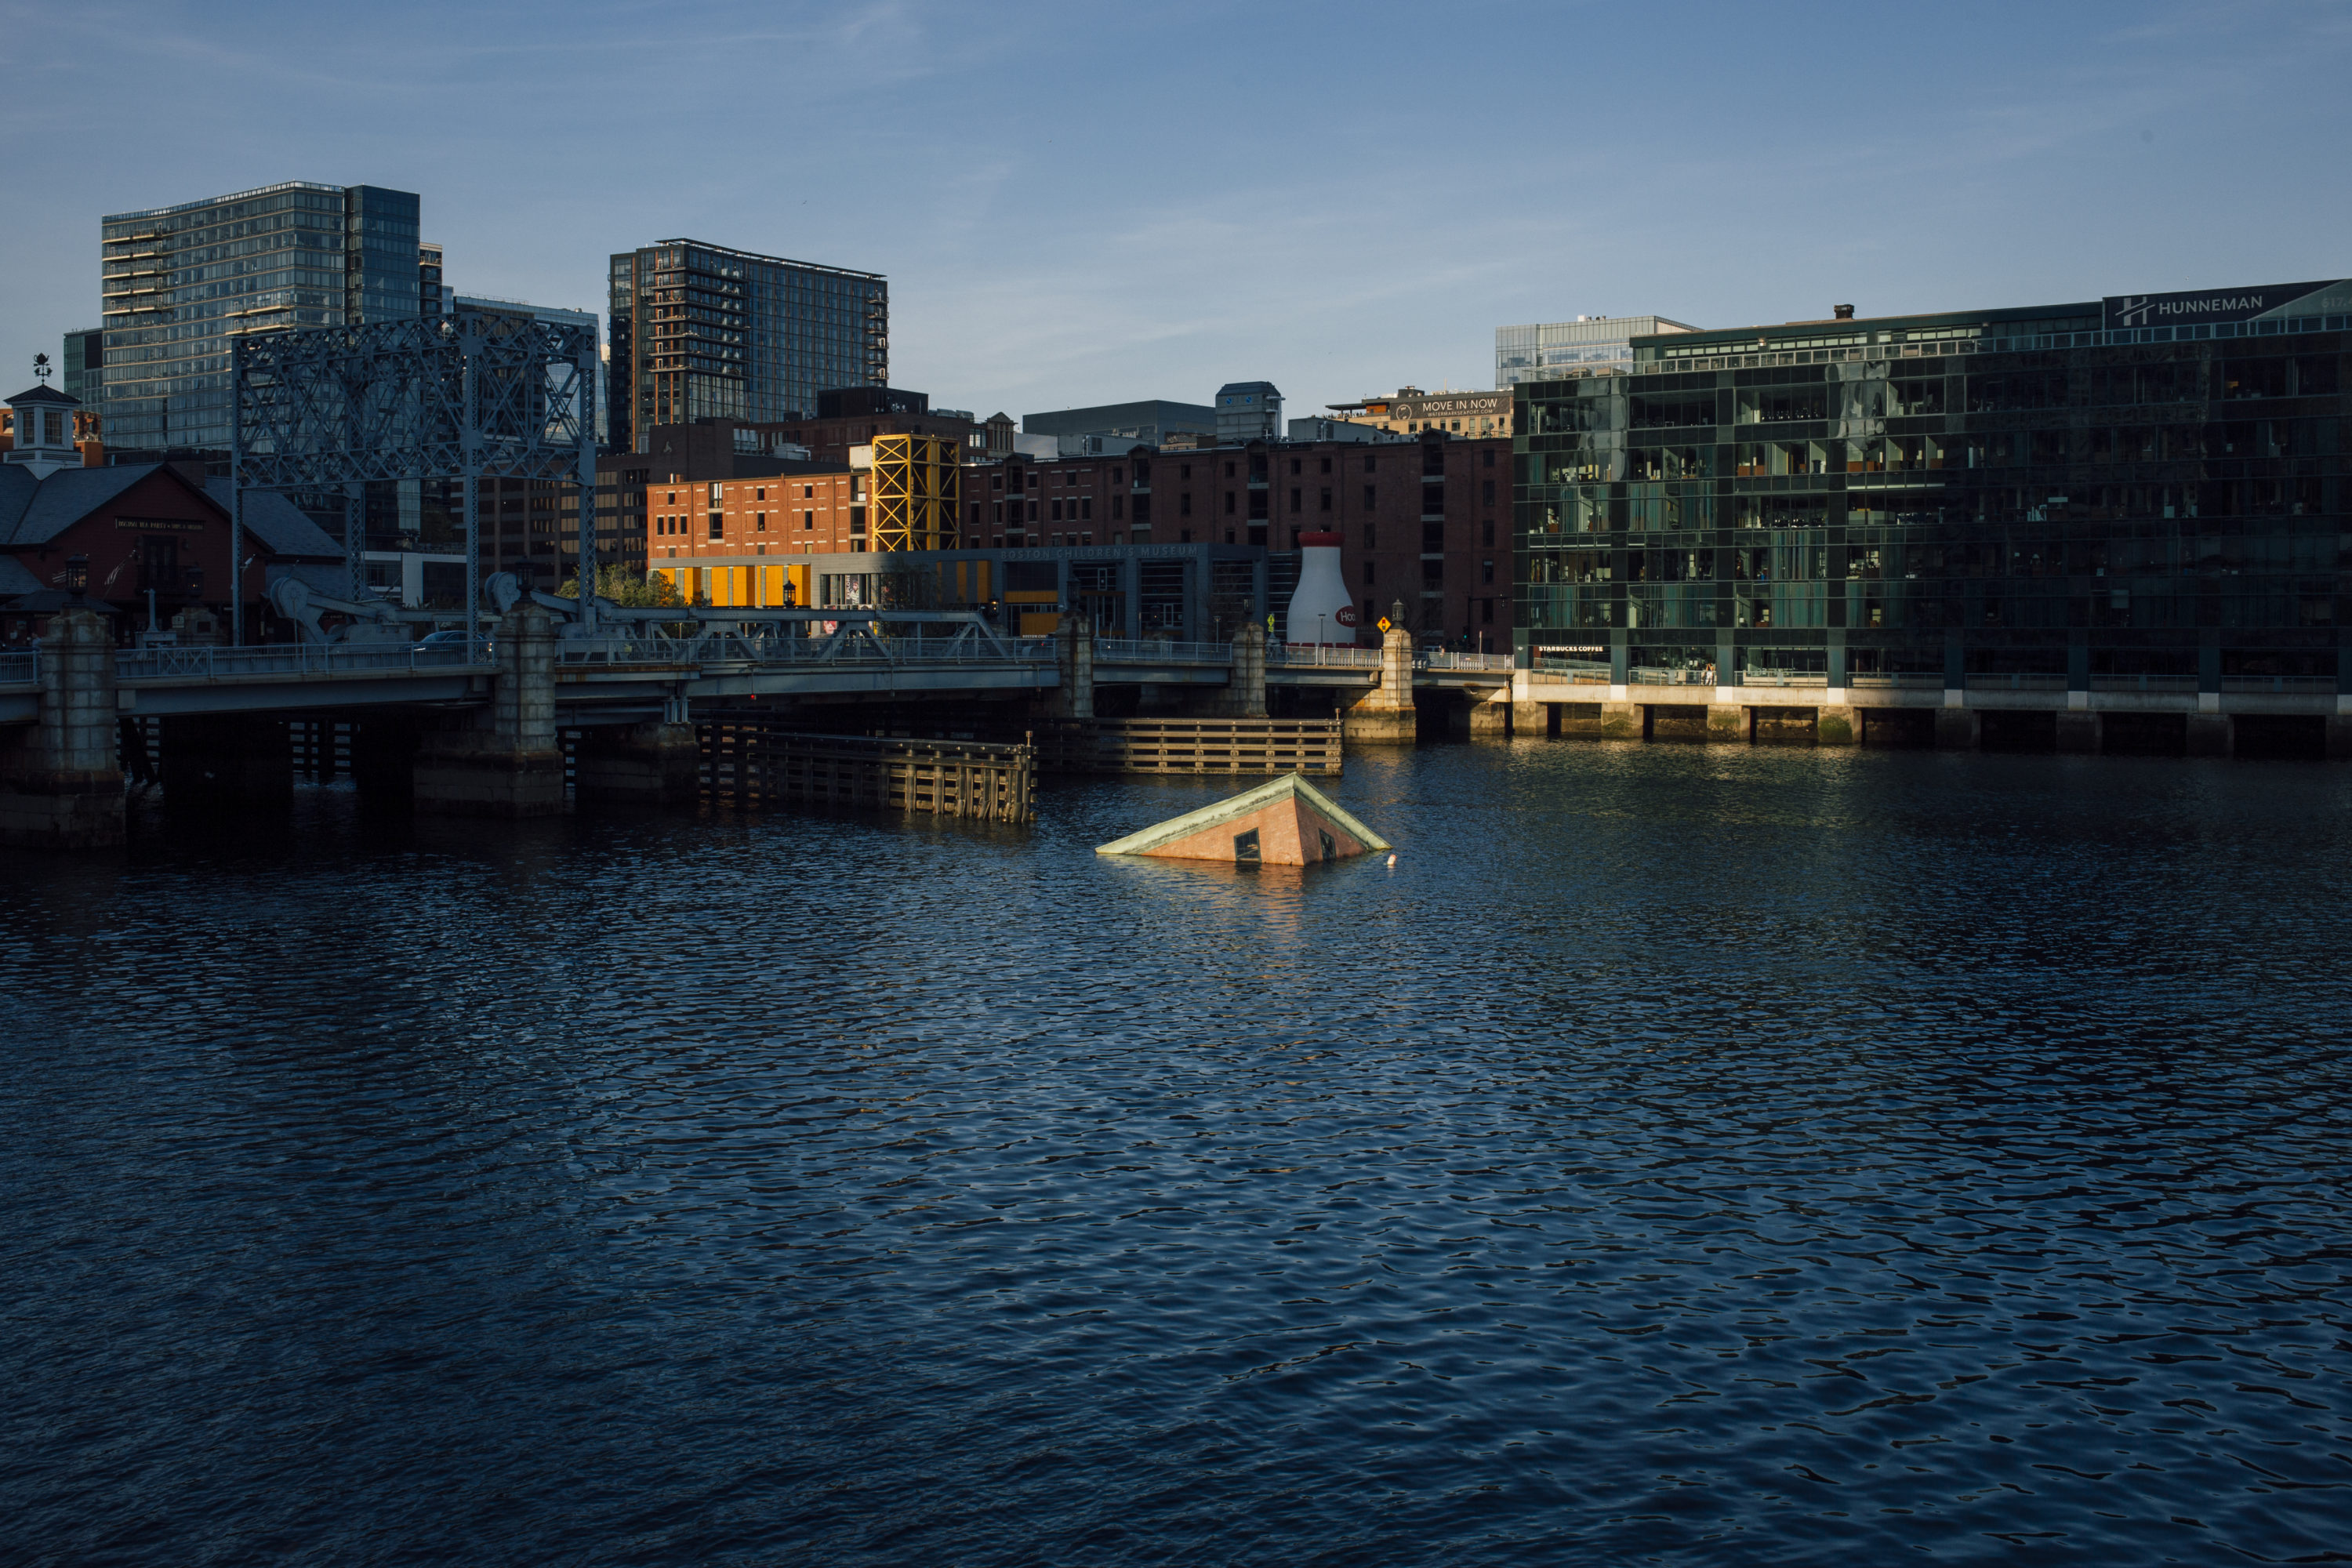 """Zy Baer's """"Polarity"""" installation imagines how the Fort Point and Seaport neighborhoods could look if nothing is done to reverse the effects of climate change. (Courtesy Fort Point Arts Commission)"""